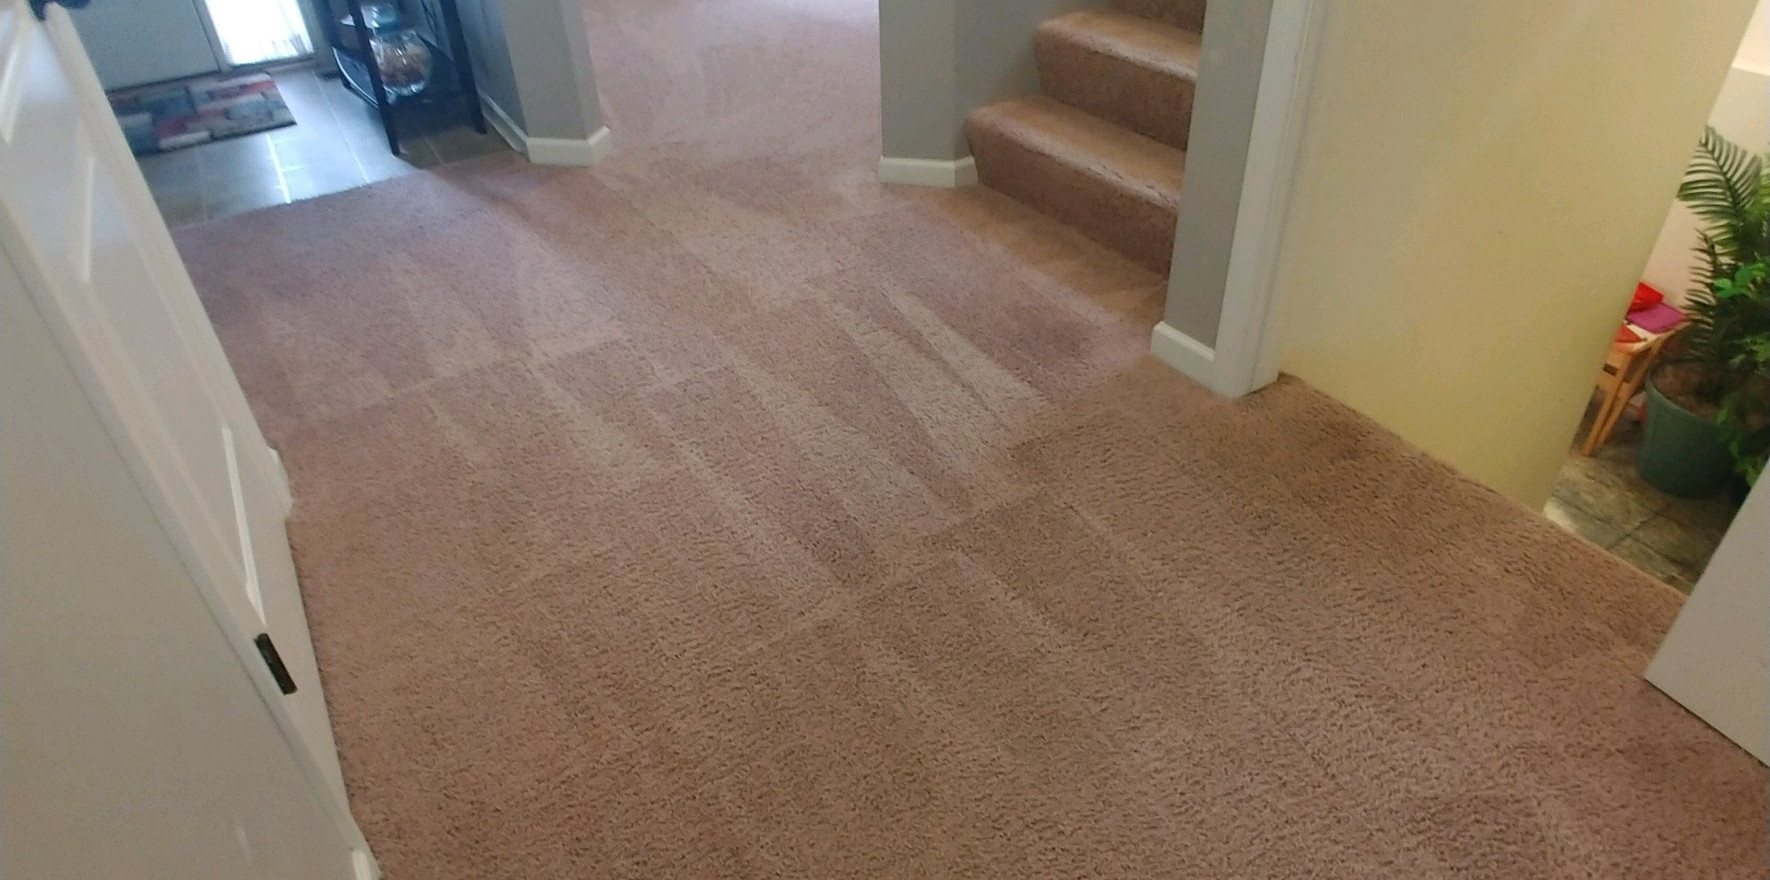 Carpet Cleaning Services In West Bloomfield, MI